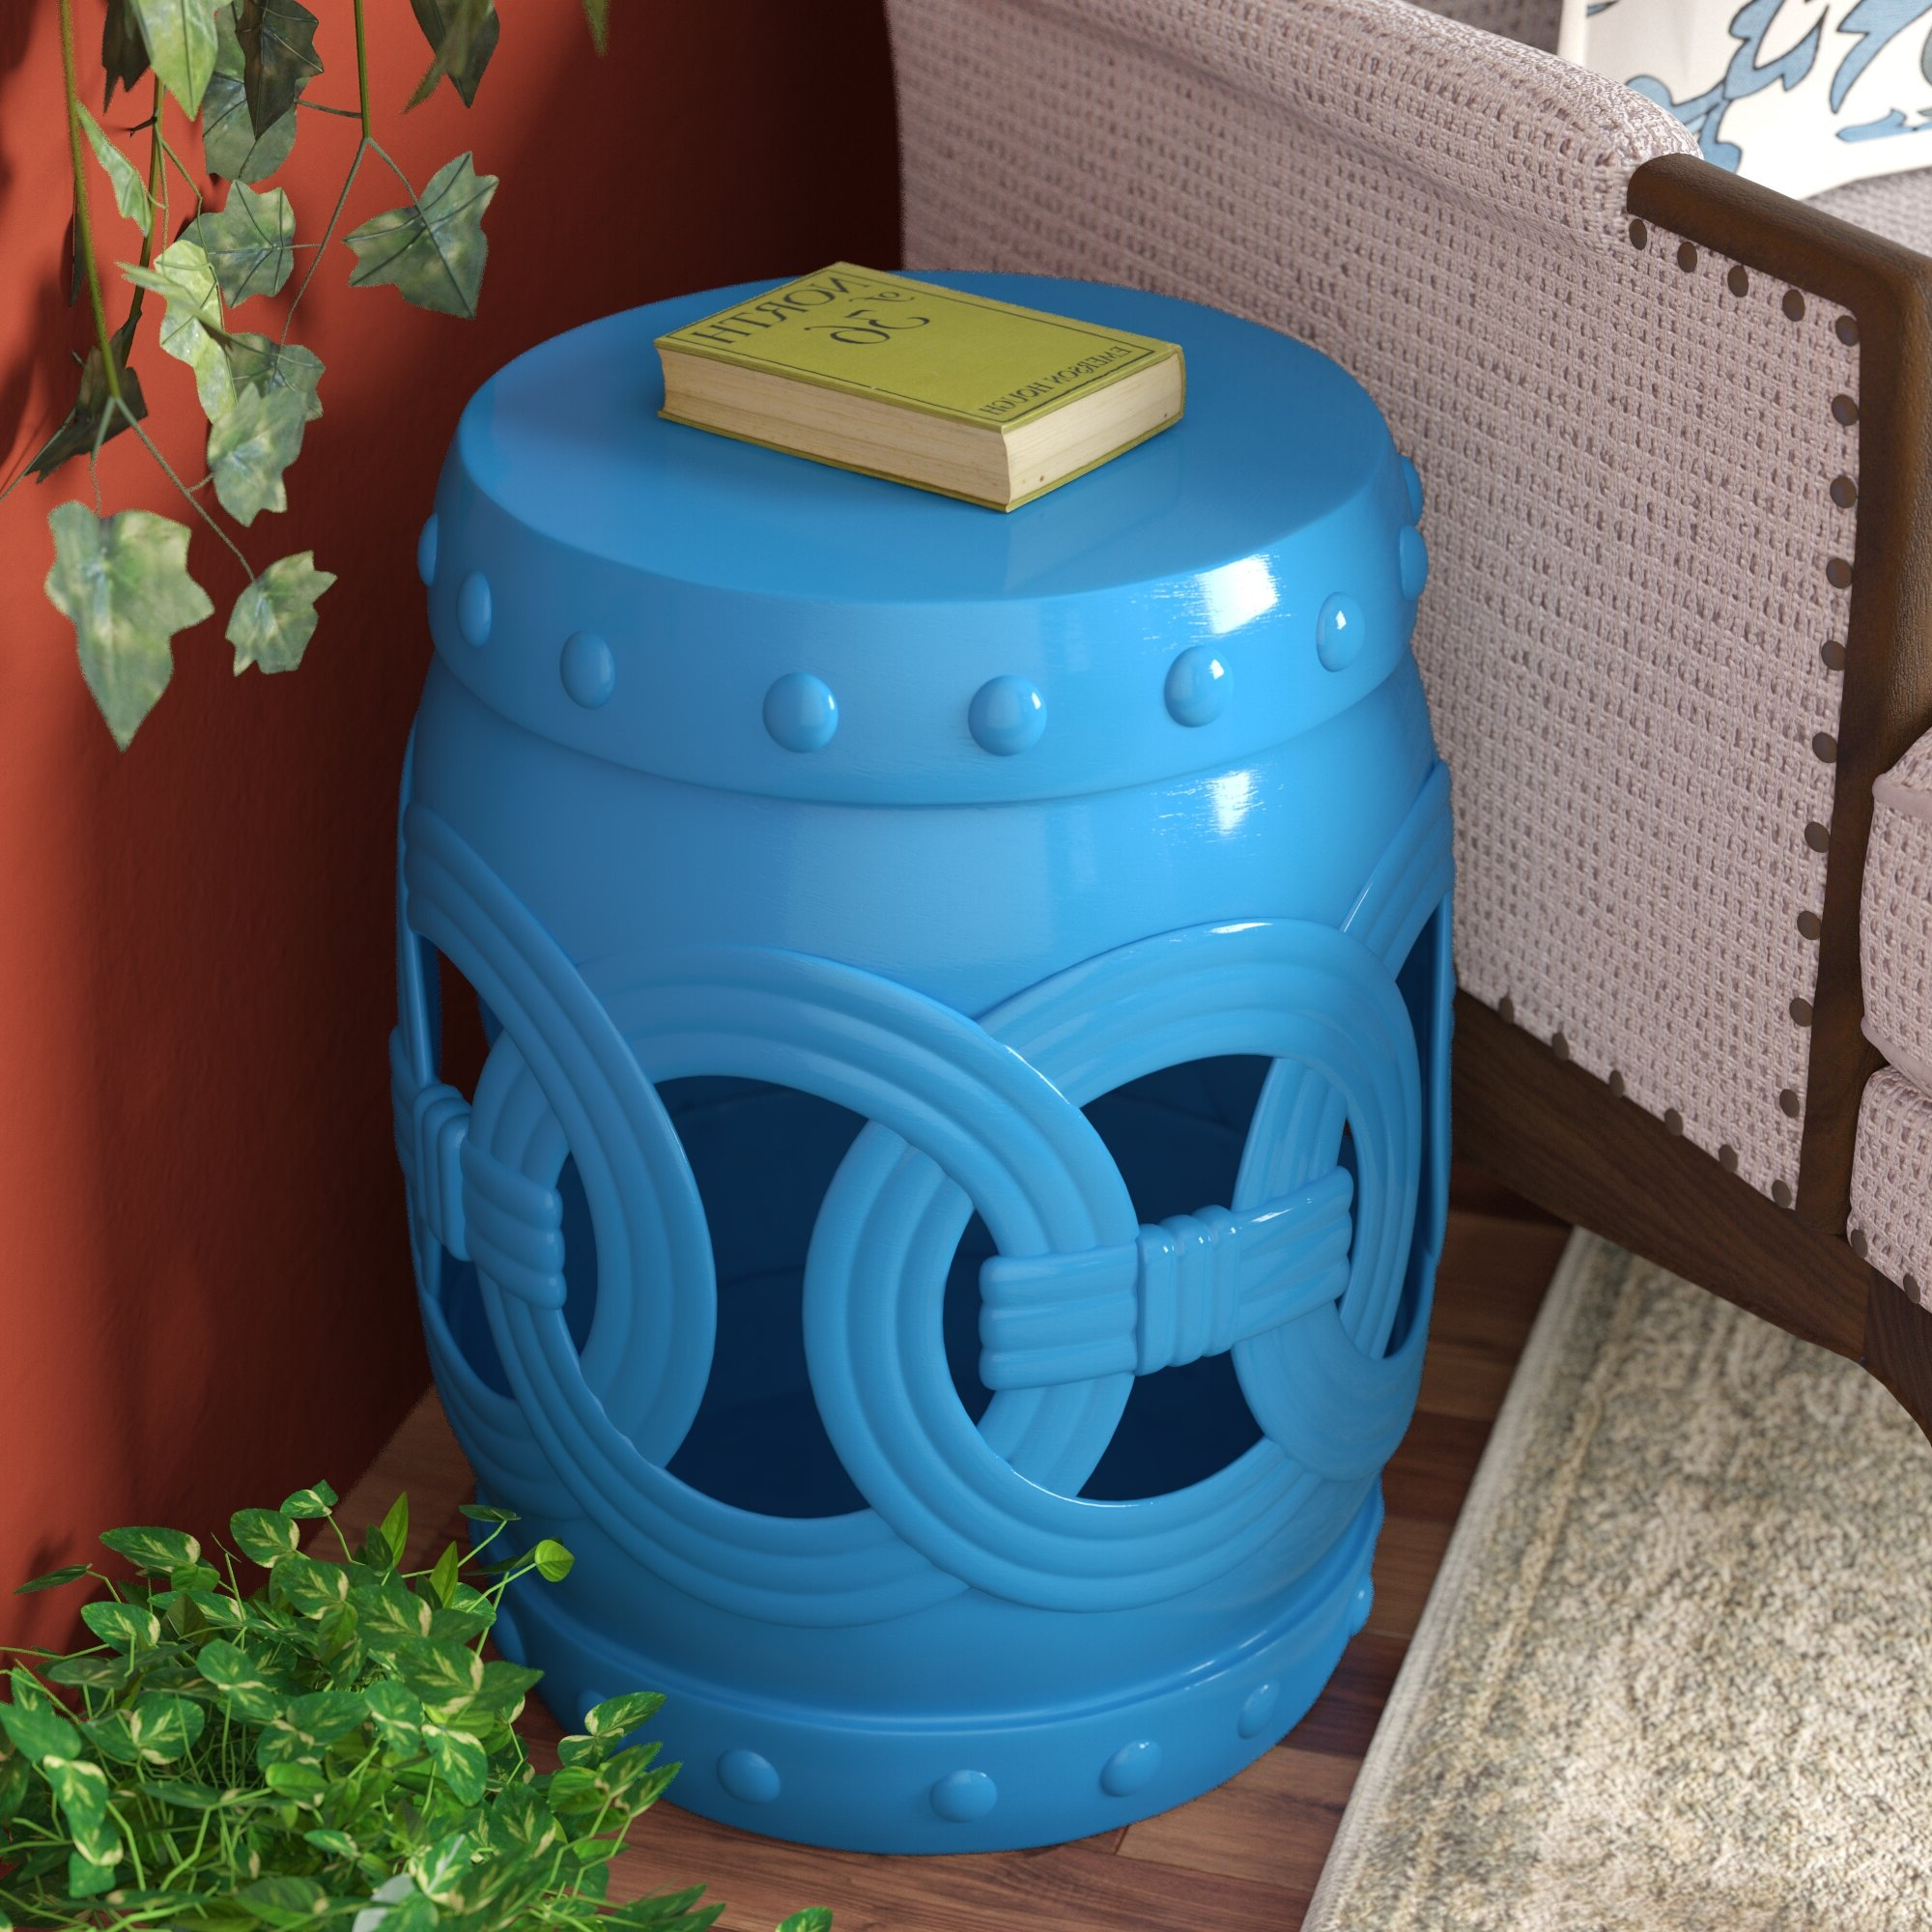 Well Known Murphy Ceramic Garden Stools With Regard To Kilpatrick Feng Shui Ceramic Garden Stool (View 13 of 30)